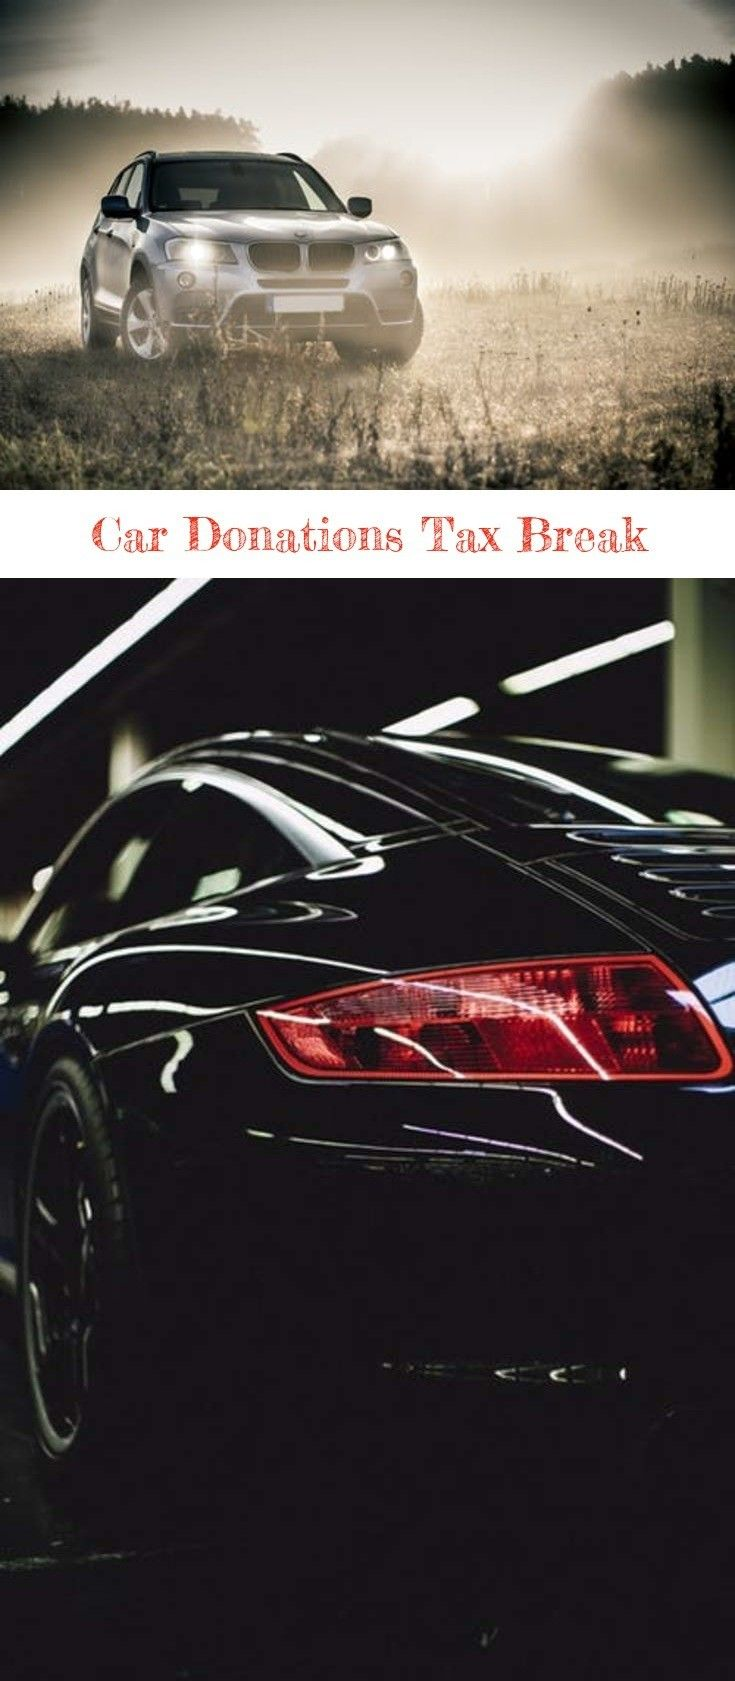 Car Donations And Charity With Images Enterprise Rent A Car Rent A Car Car